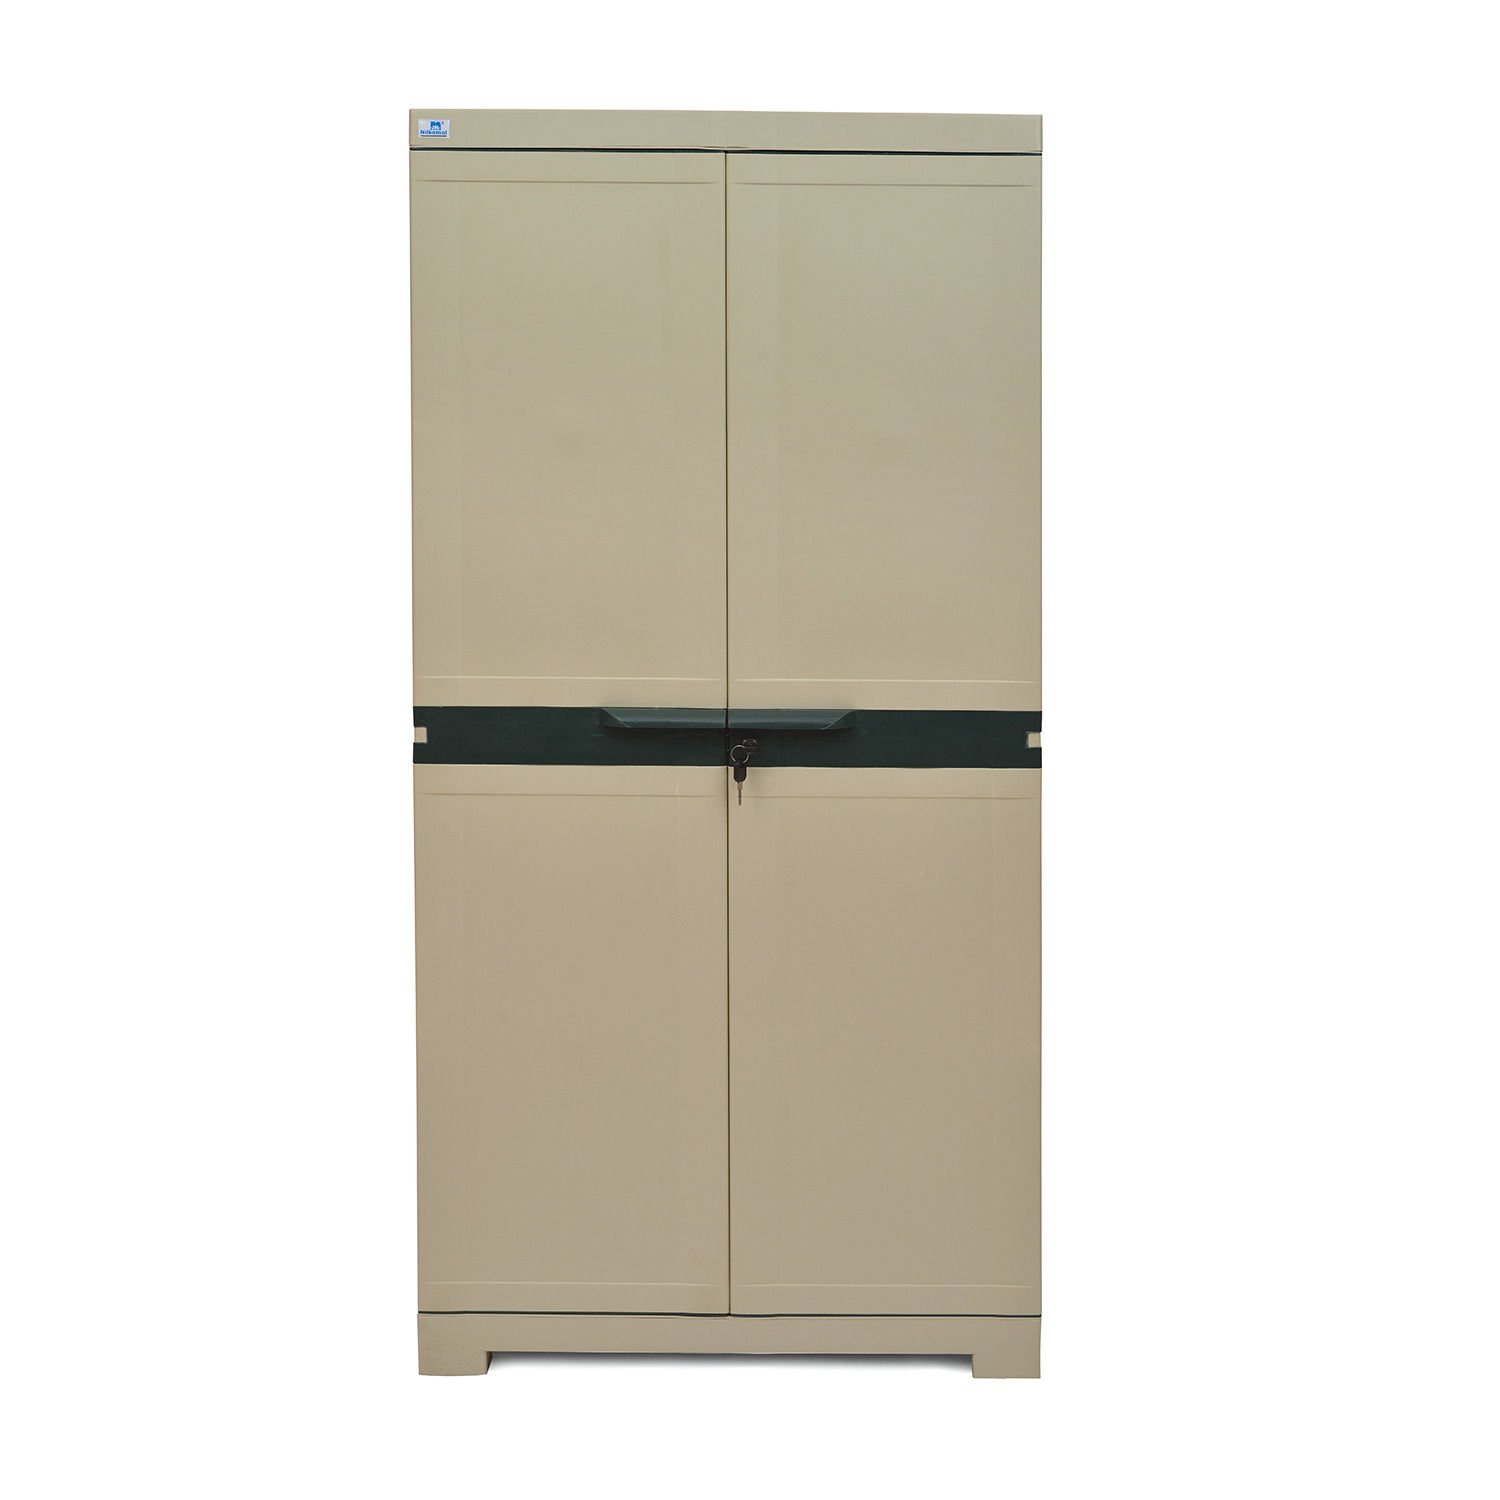 Plasti Dip Kitchen Cabinets Cabinets Buy Living Room Cabinets Online At Low Prices In India